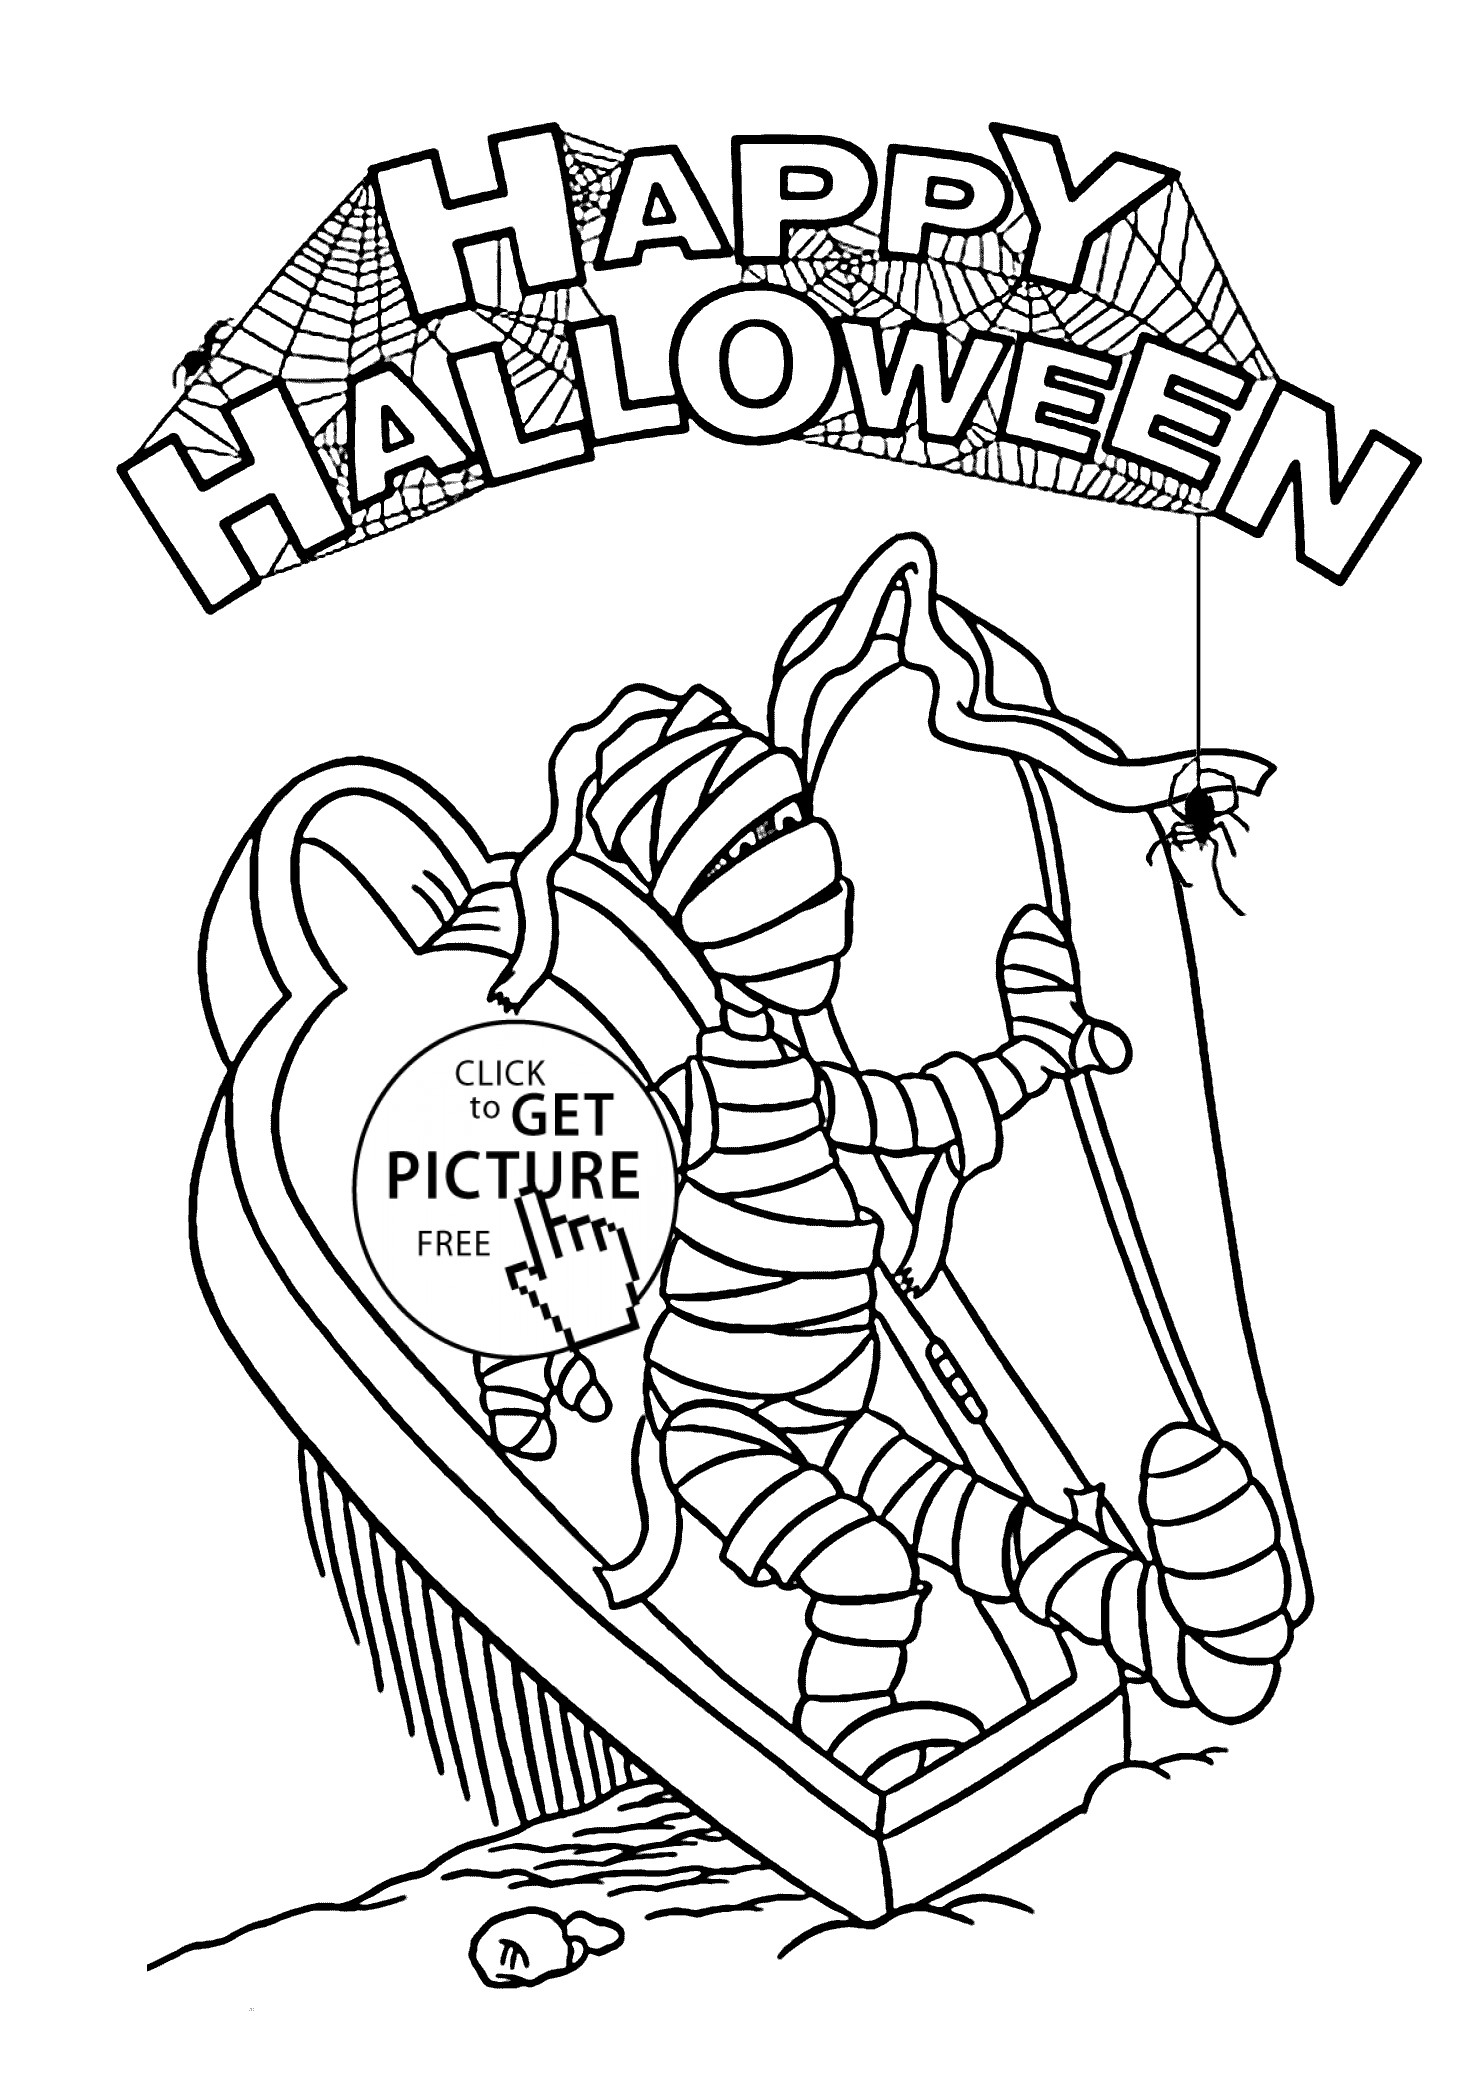 Mummy Coloring Pages  Download 11s - Free Download